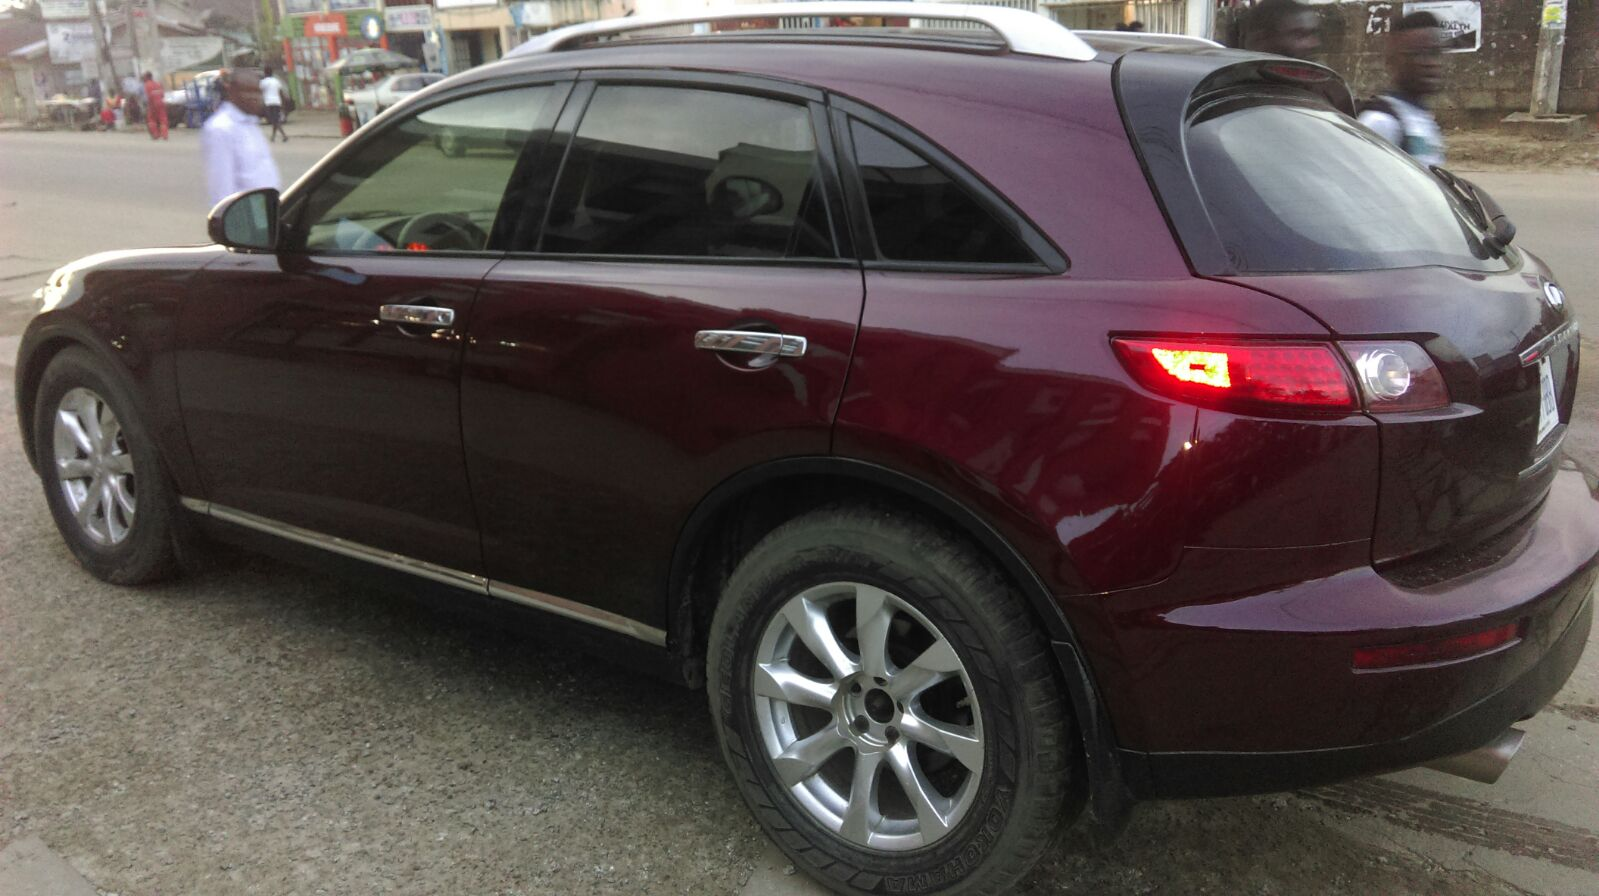 Infiniti 06 infiniti : Well Maintained 06 Infiniti Fx35 For Sale In Ph City @ 1.4m sold ...